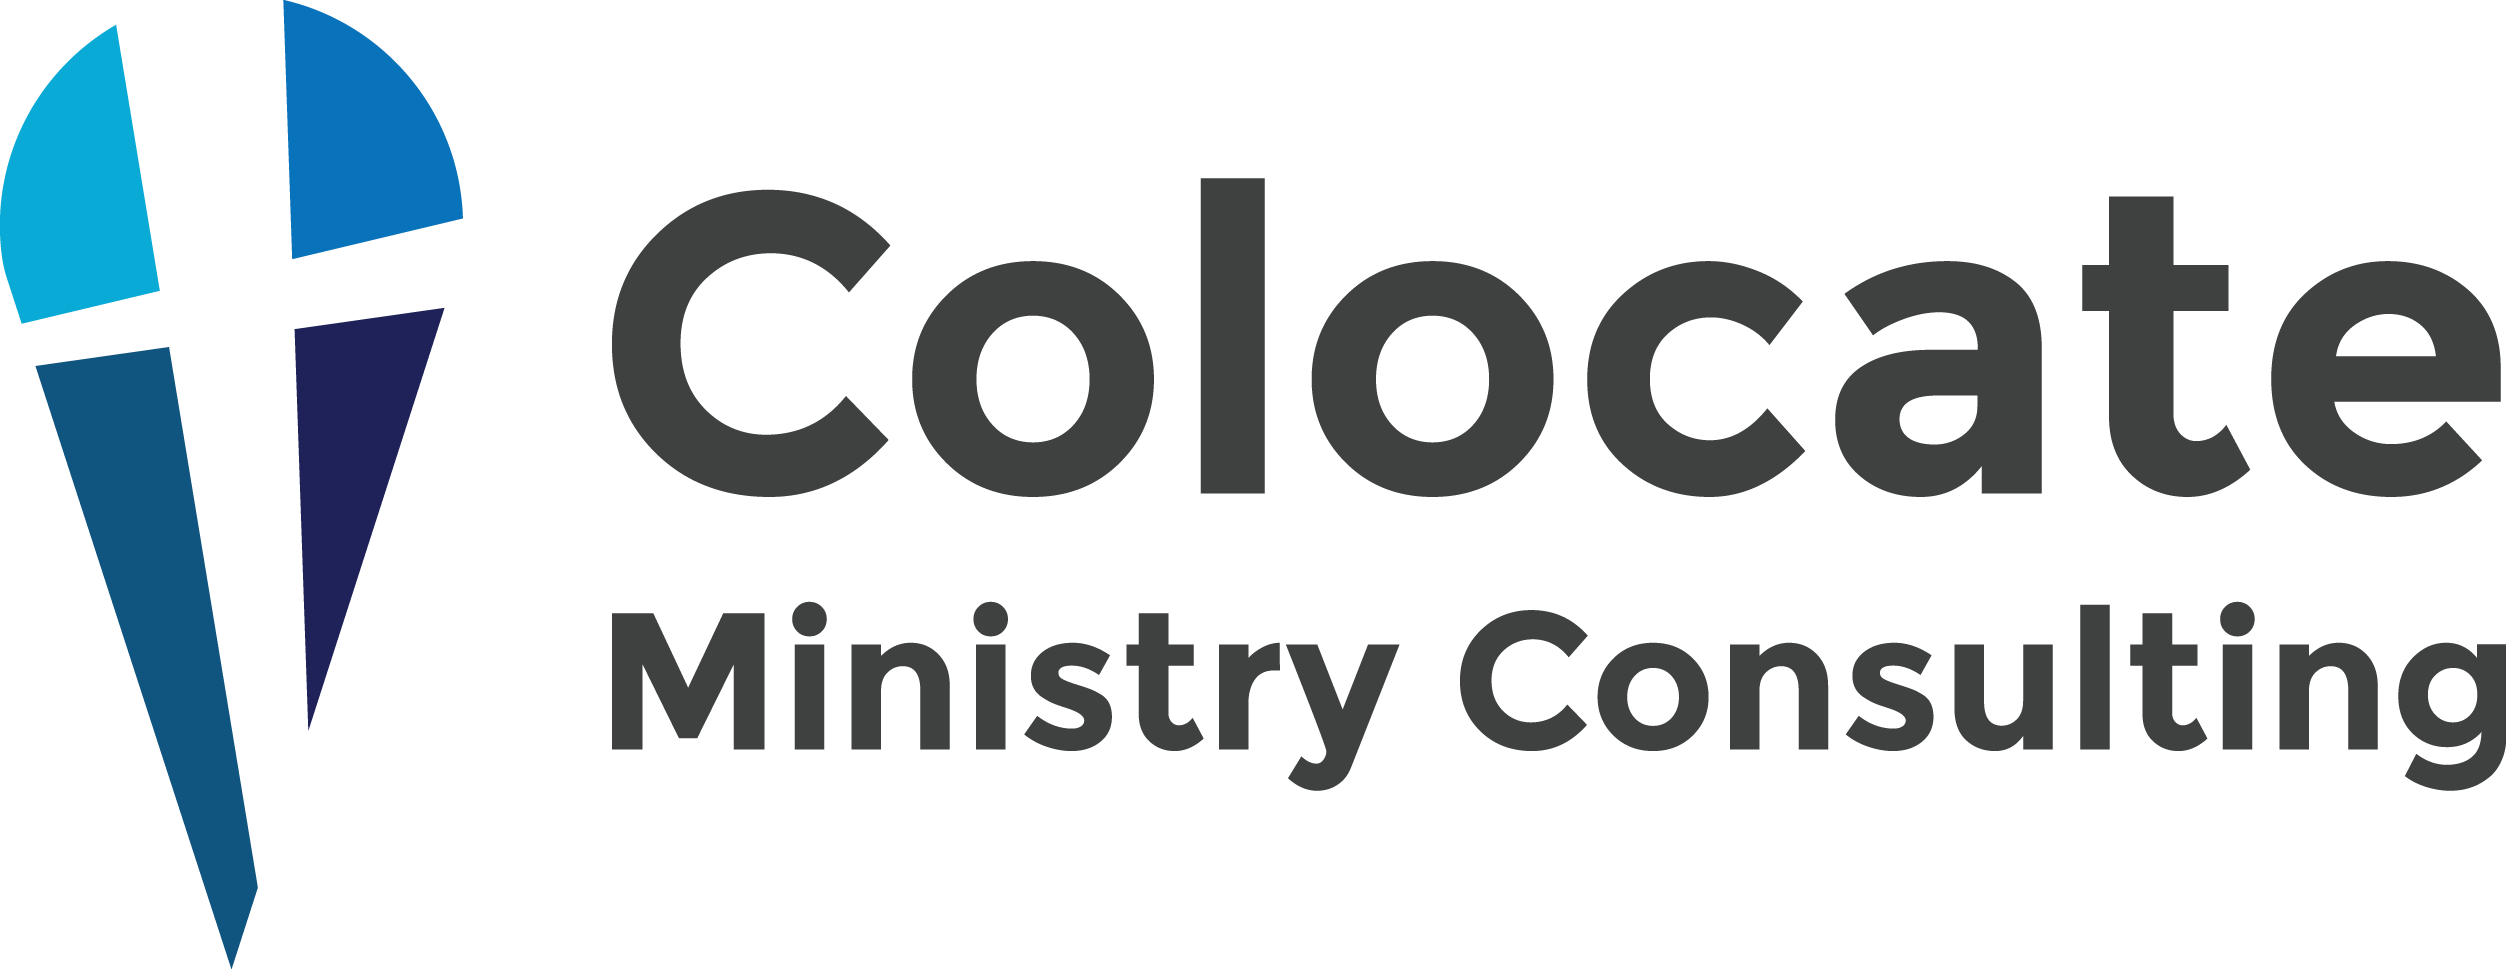 Colocate Ministry Consulting